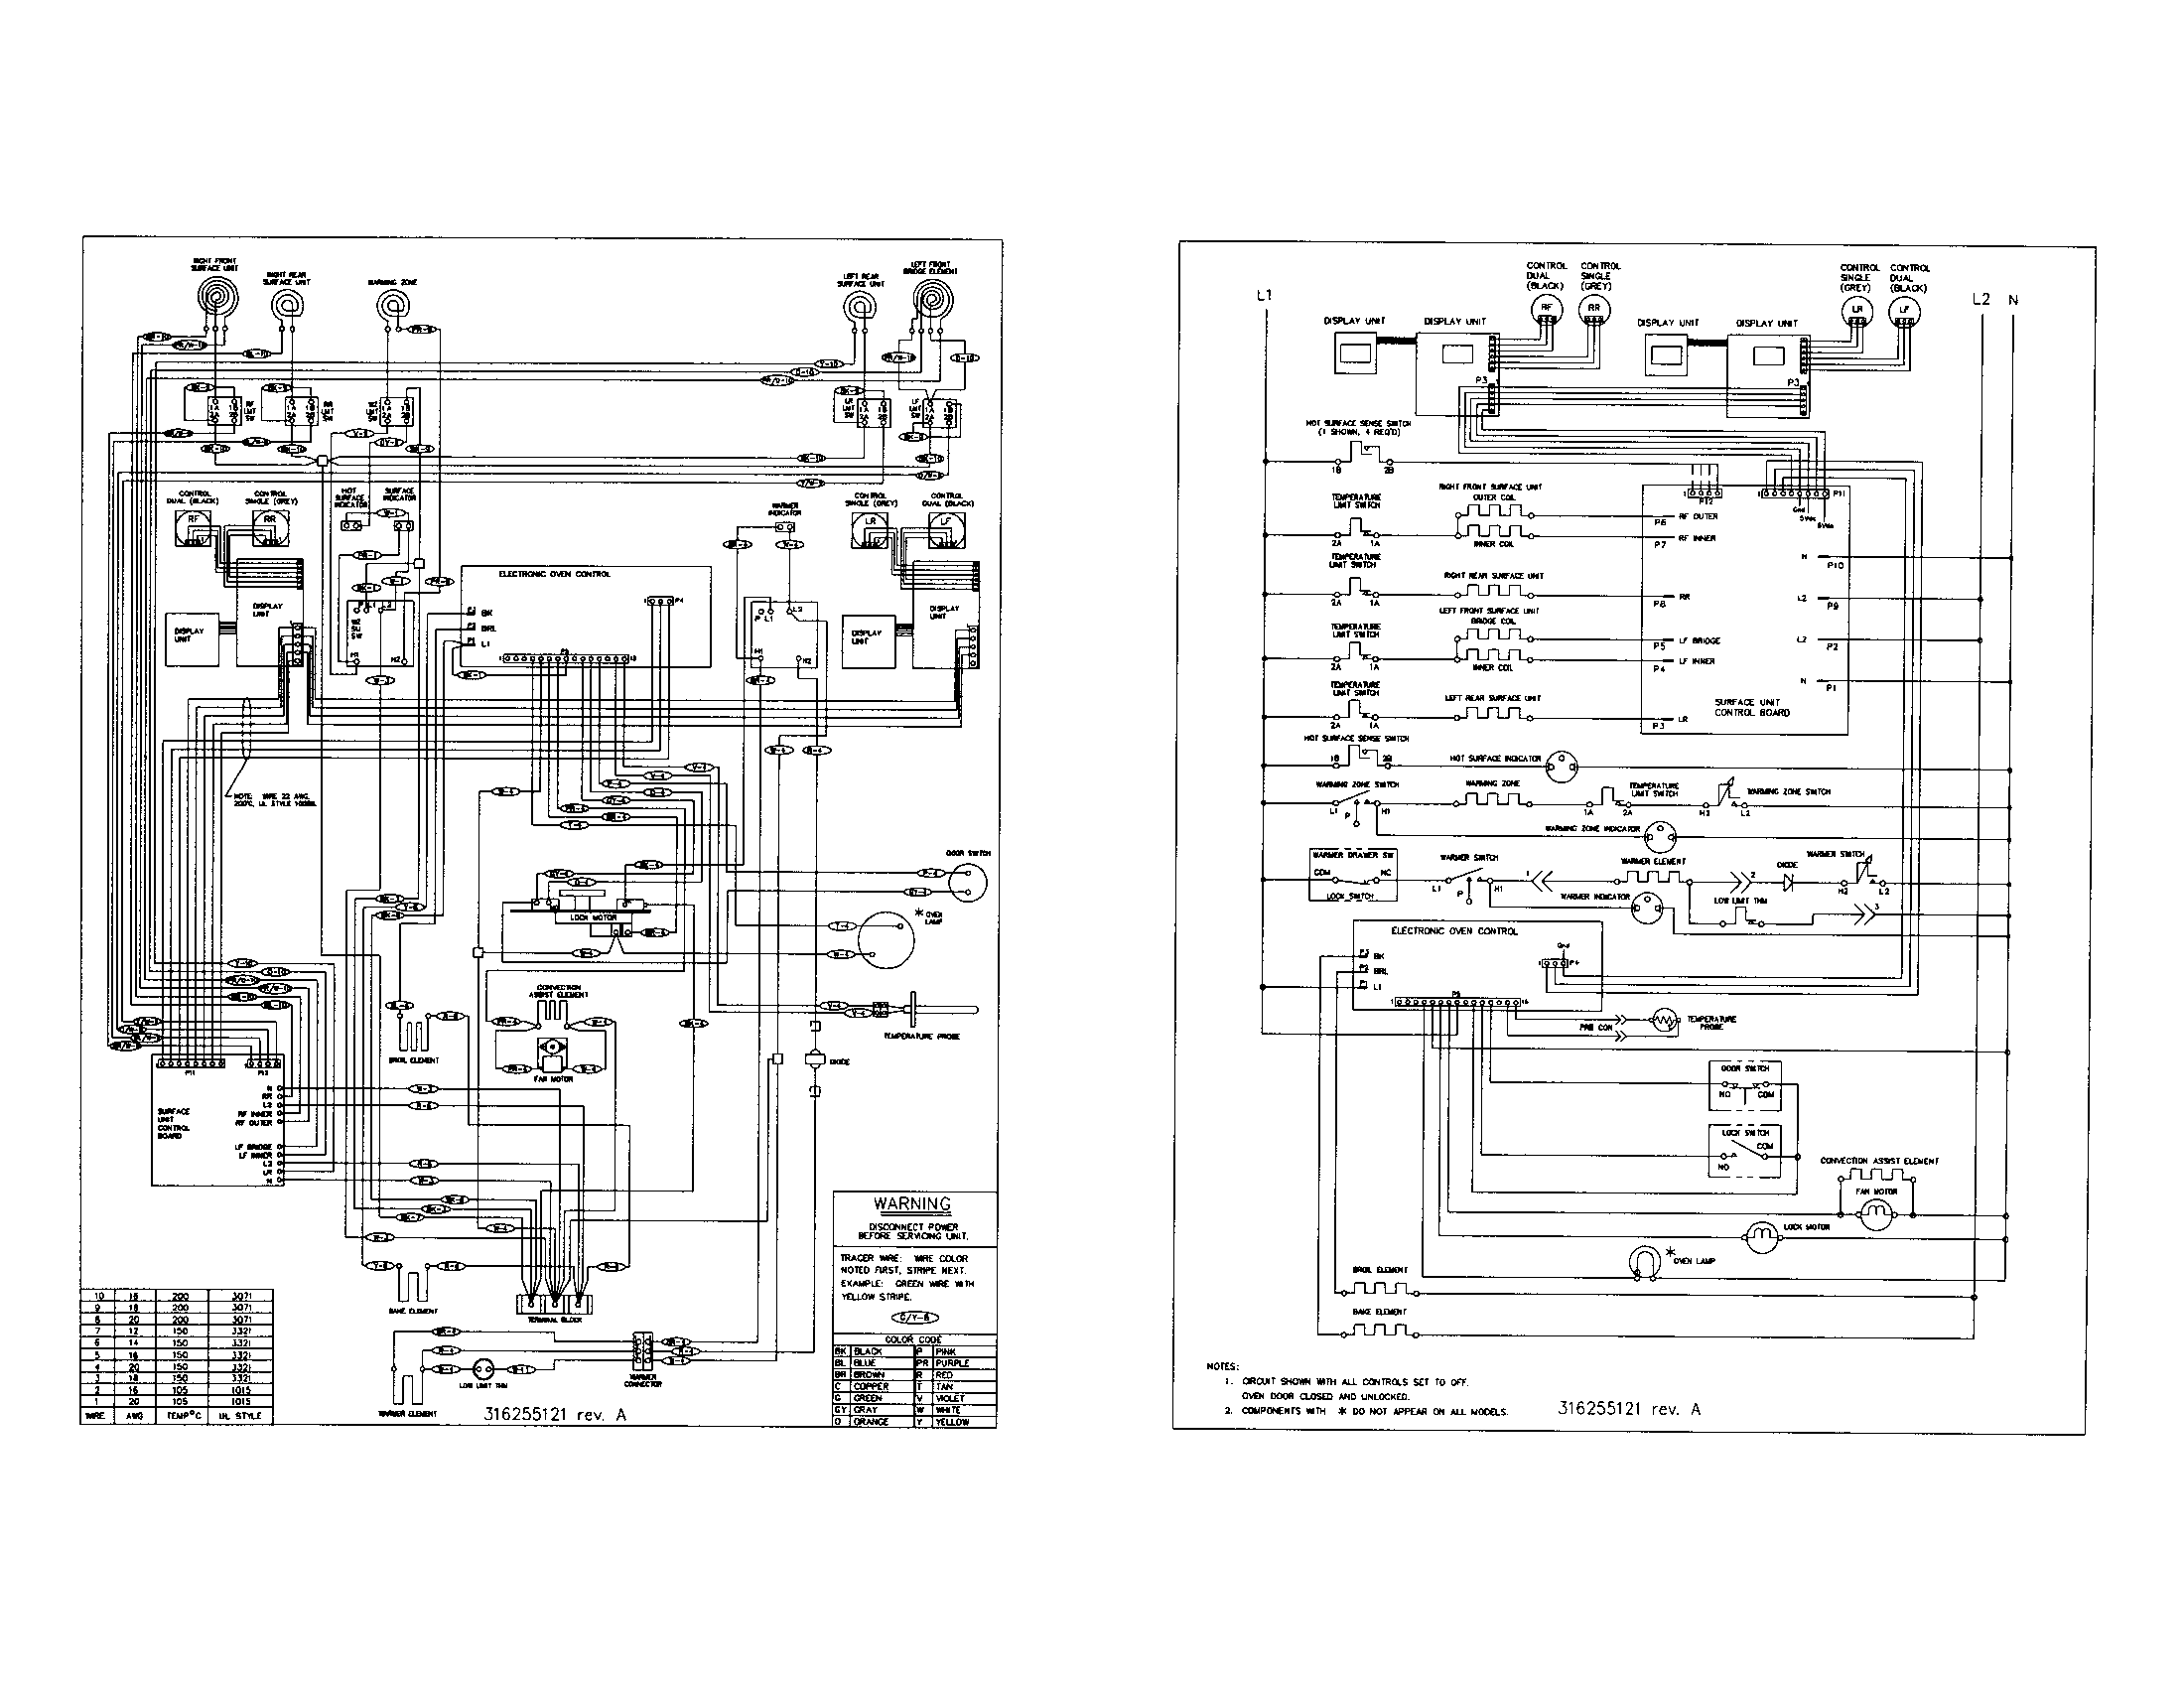 wiring diagram parts?resize\\\\\\\\\\\\\\\\\\\\\\\\\\\\\\\\\\\\\\\\\\\\\\\\\\\\\\\\\\\\\\\\\\\\\\\\\\\\\\\\\\\\\\\\\\\\\\\\\\\\\\\\\\\\\\\\\\\\\\\\\\\\\\\\\\\\\\\\\\\\\\\\\\\\\\\\\\\\\\\\\\\\\\\\\\\\\\\\\\\\\\\\\\\\\\\\\\\\\\\\\\\\\\\=840%2C648 wiring diagram head unit ertiga gandul 45 77 79 119 on car wiring  at n-0.co